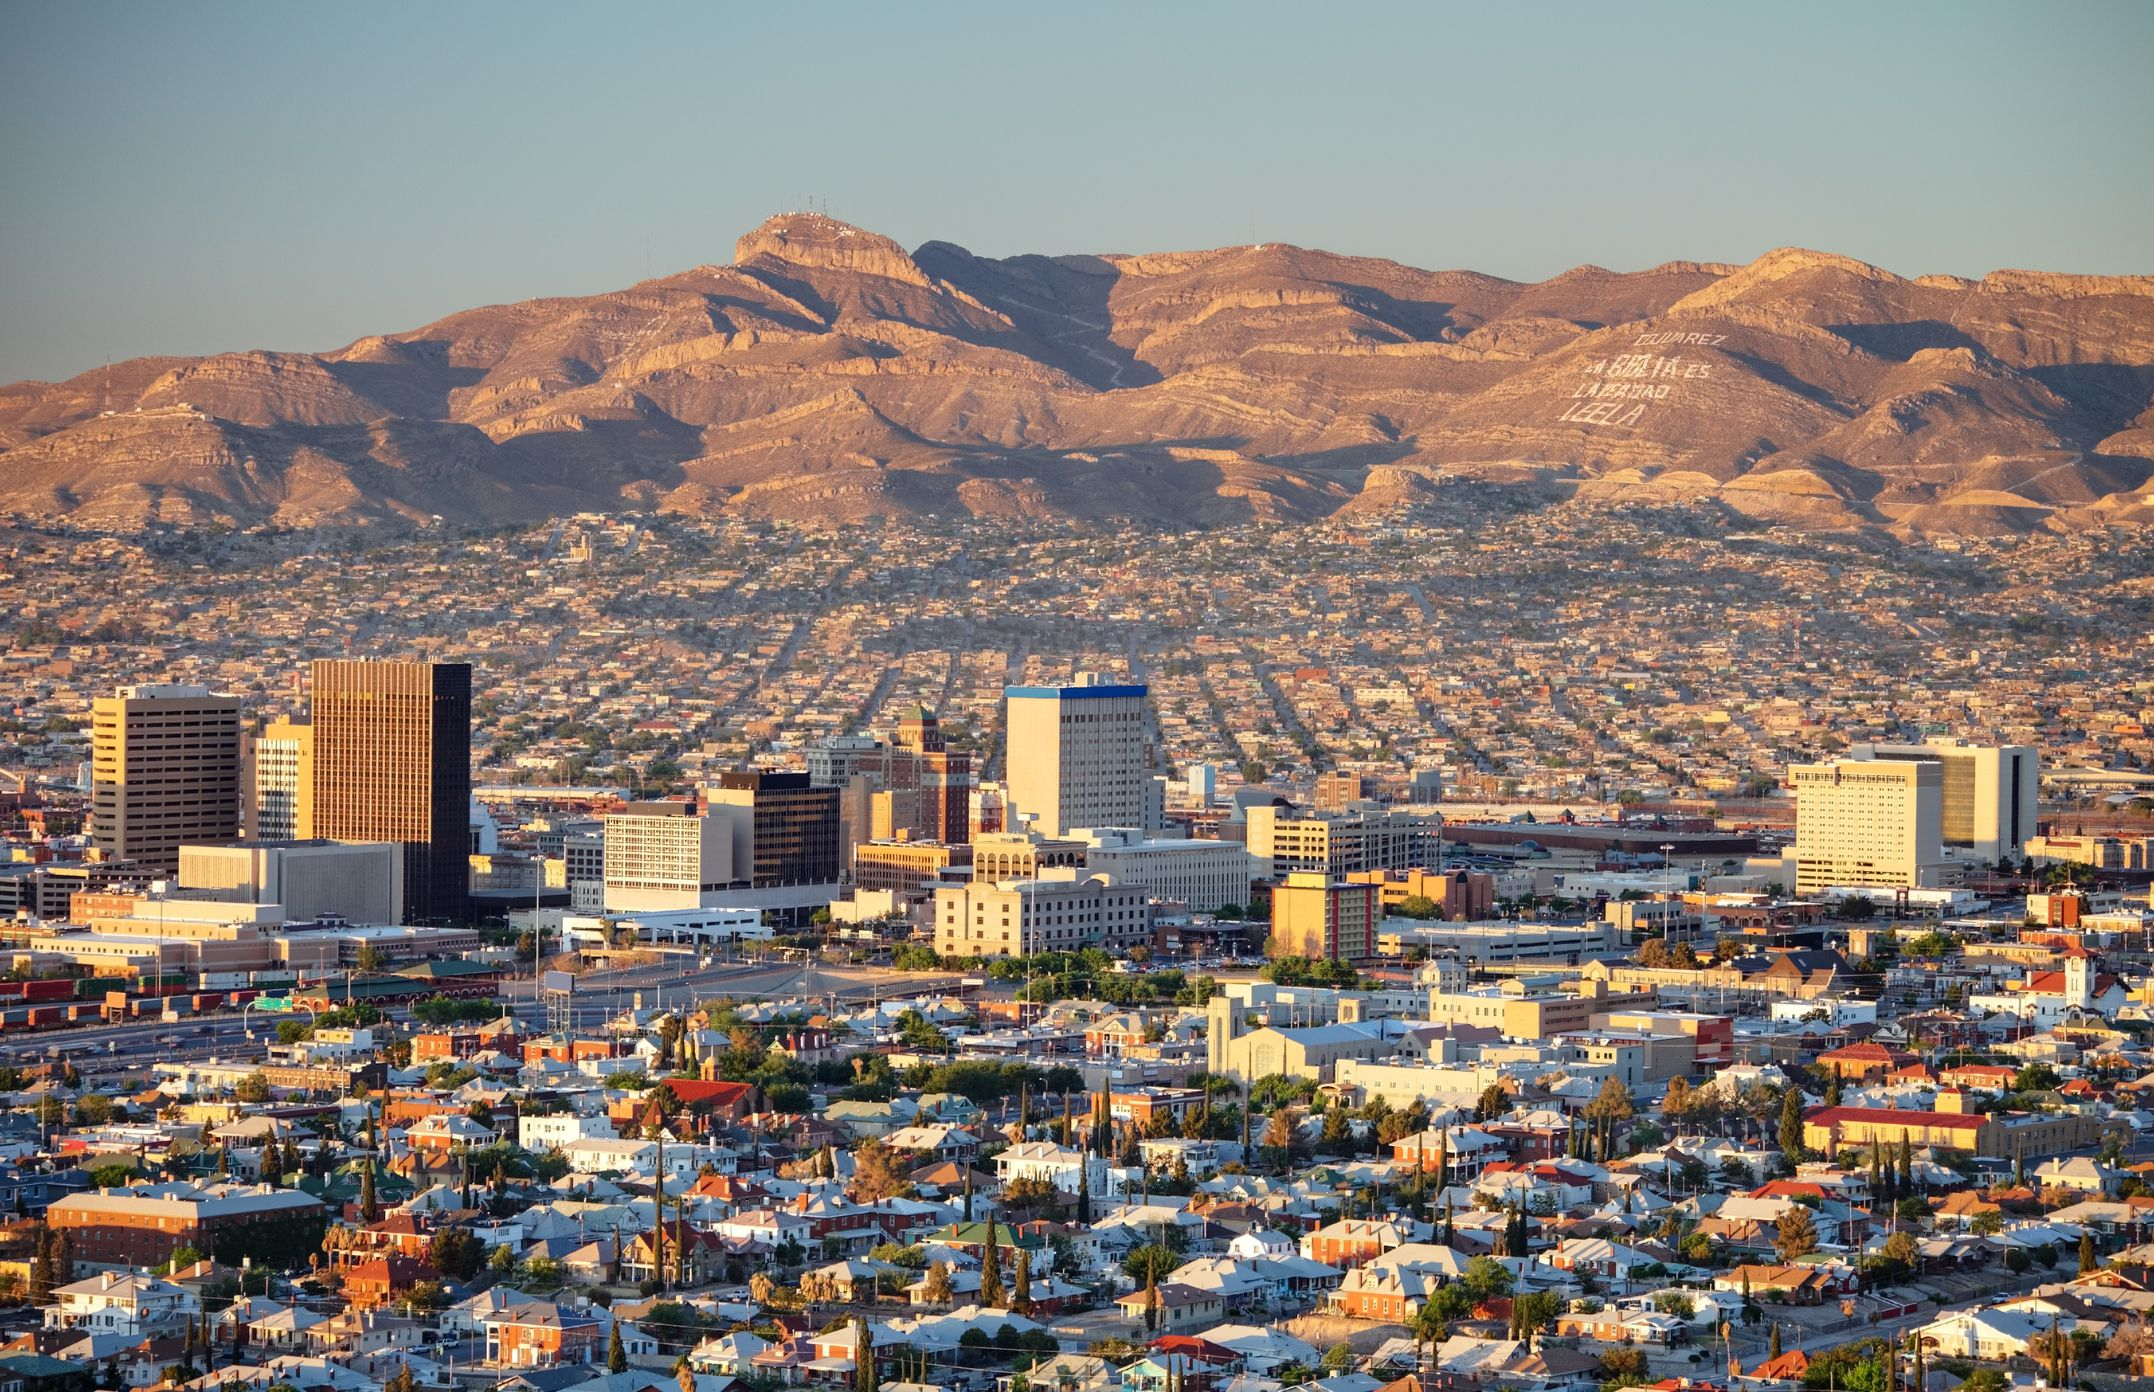 10 Historical Facts About El Paso, Texas